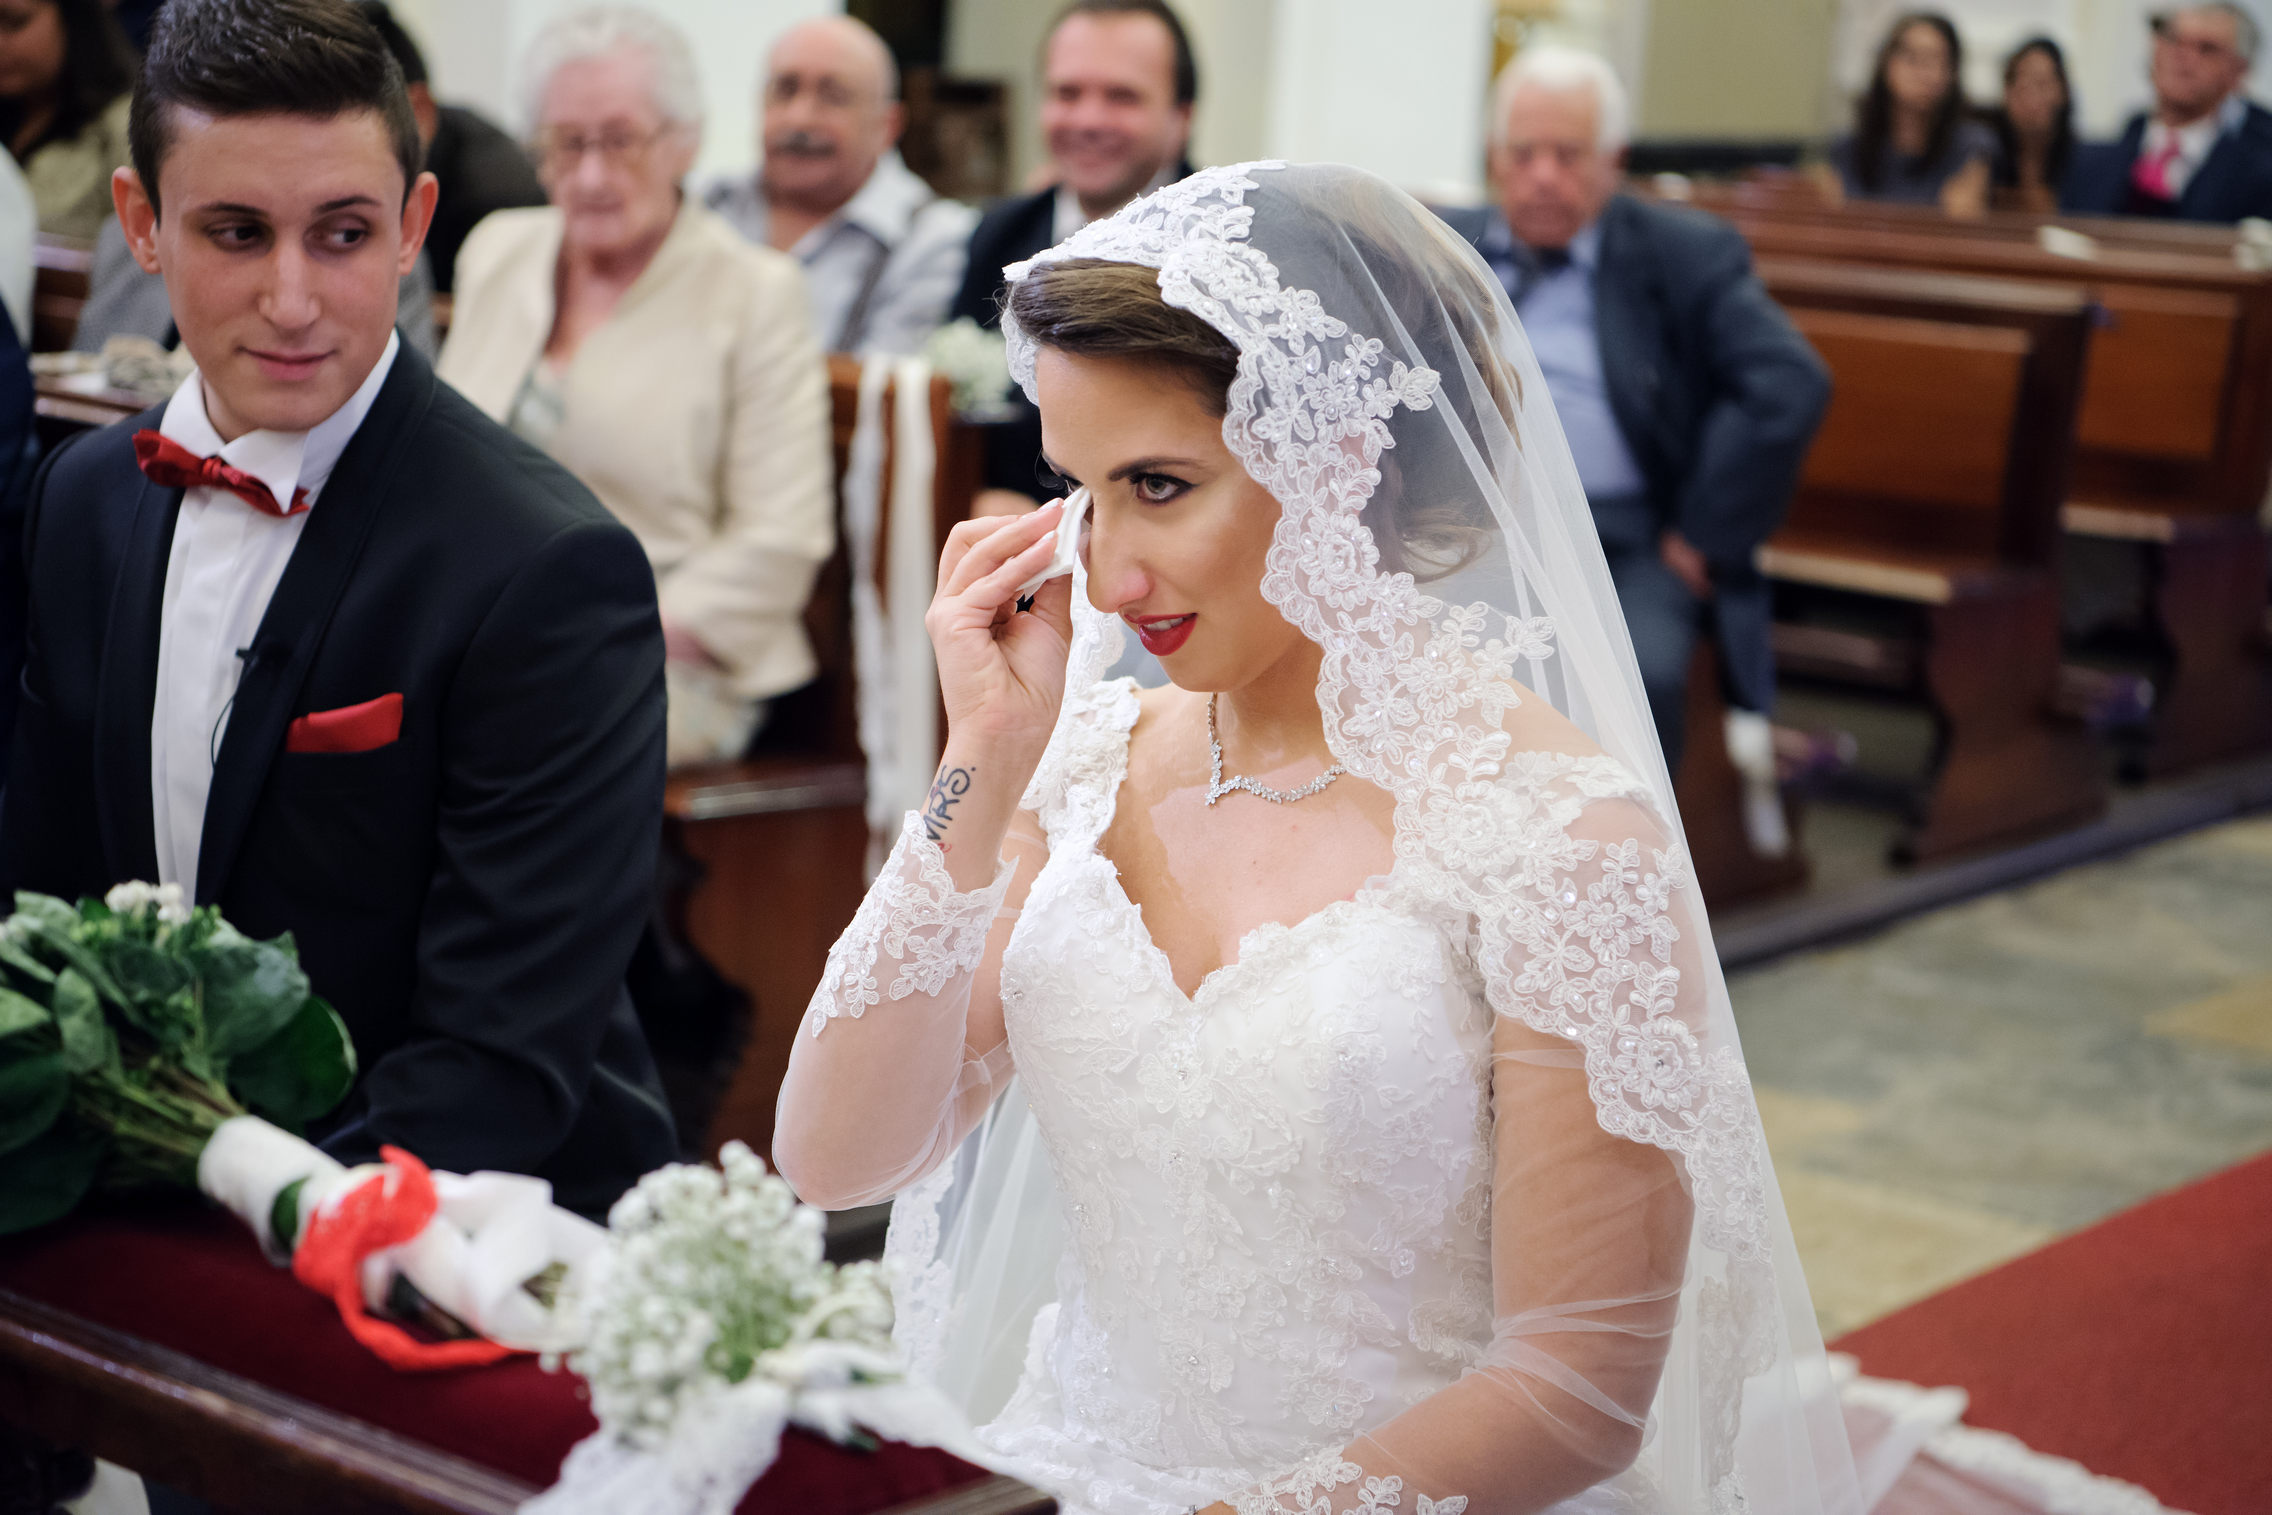 sposa che piange all'altare - crying bride